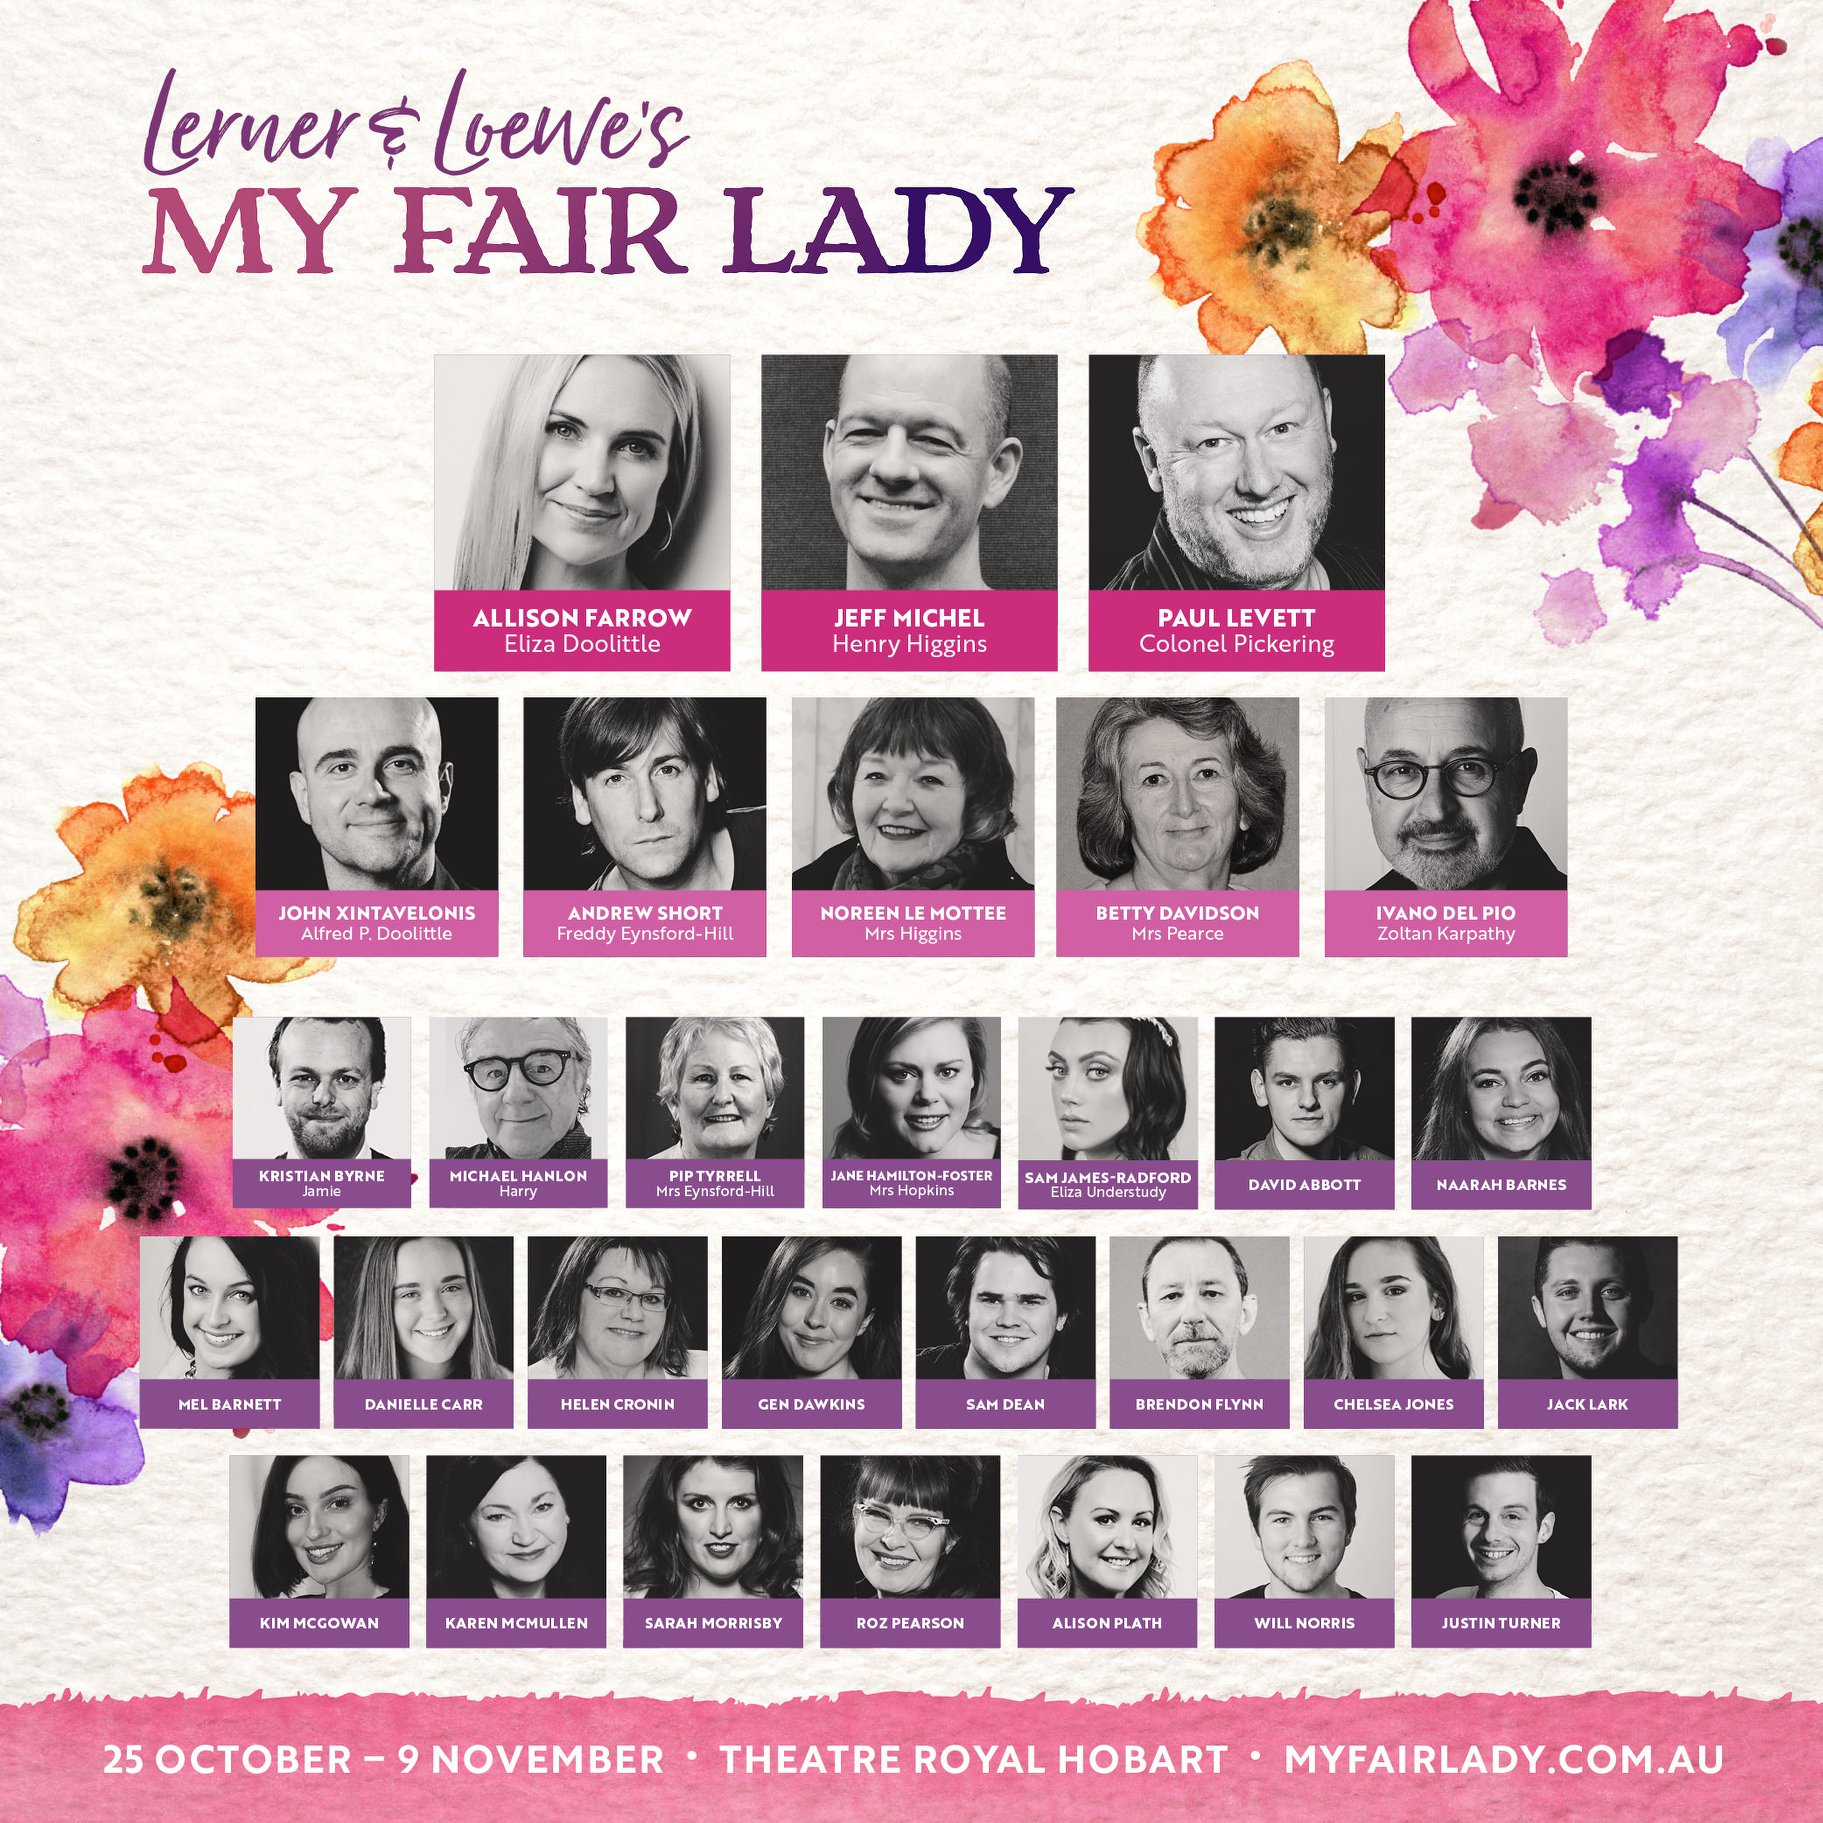 Can you spot our TC Vocal students? Bijou Creative is thrilled to announce our fabulous My Fair Lady cast!  Tickets  now available through the Theatre Royal. Rehearsals have started and it promises to be a 'loverly' night at our beautiful theatre.